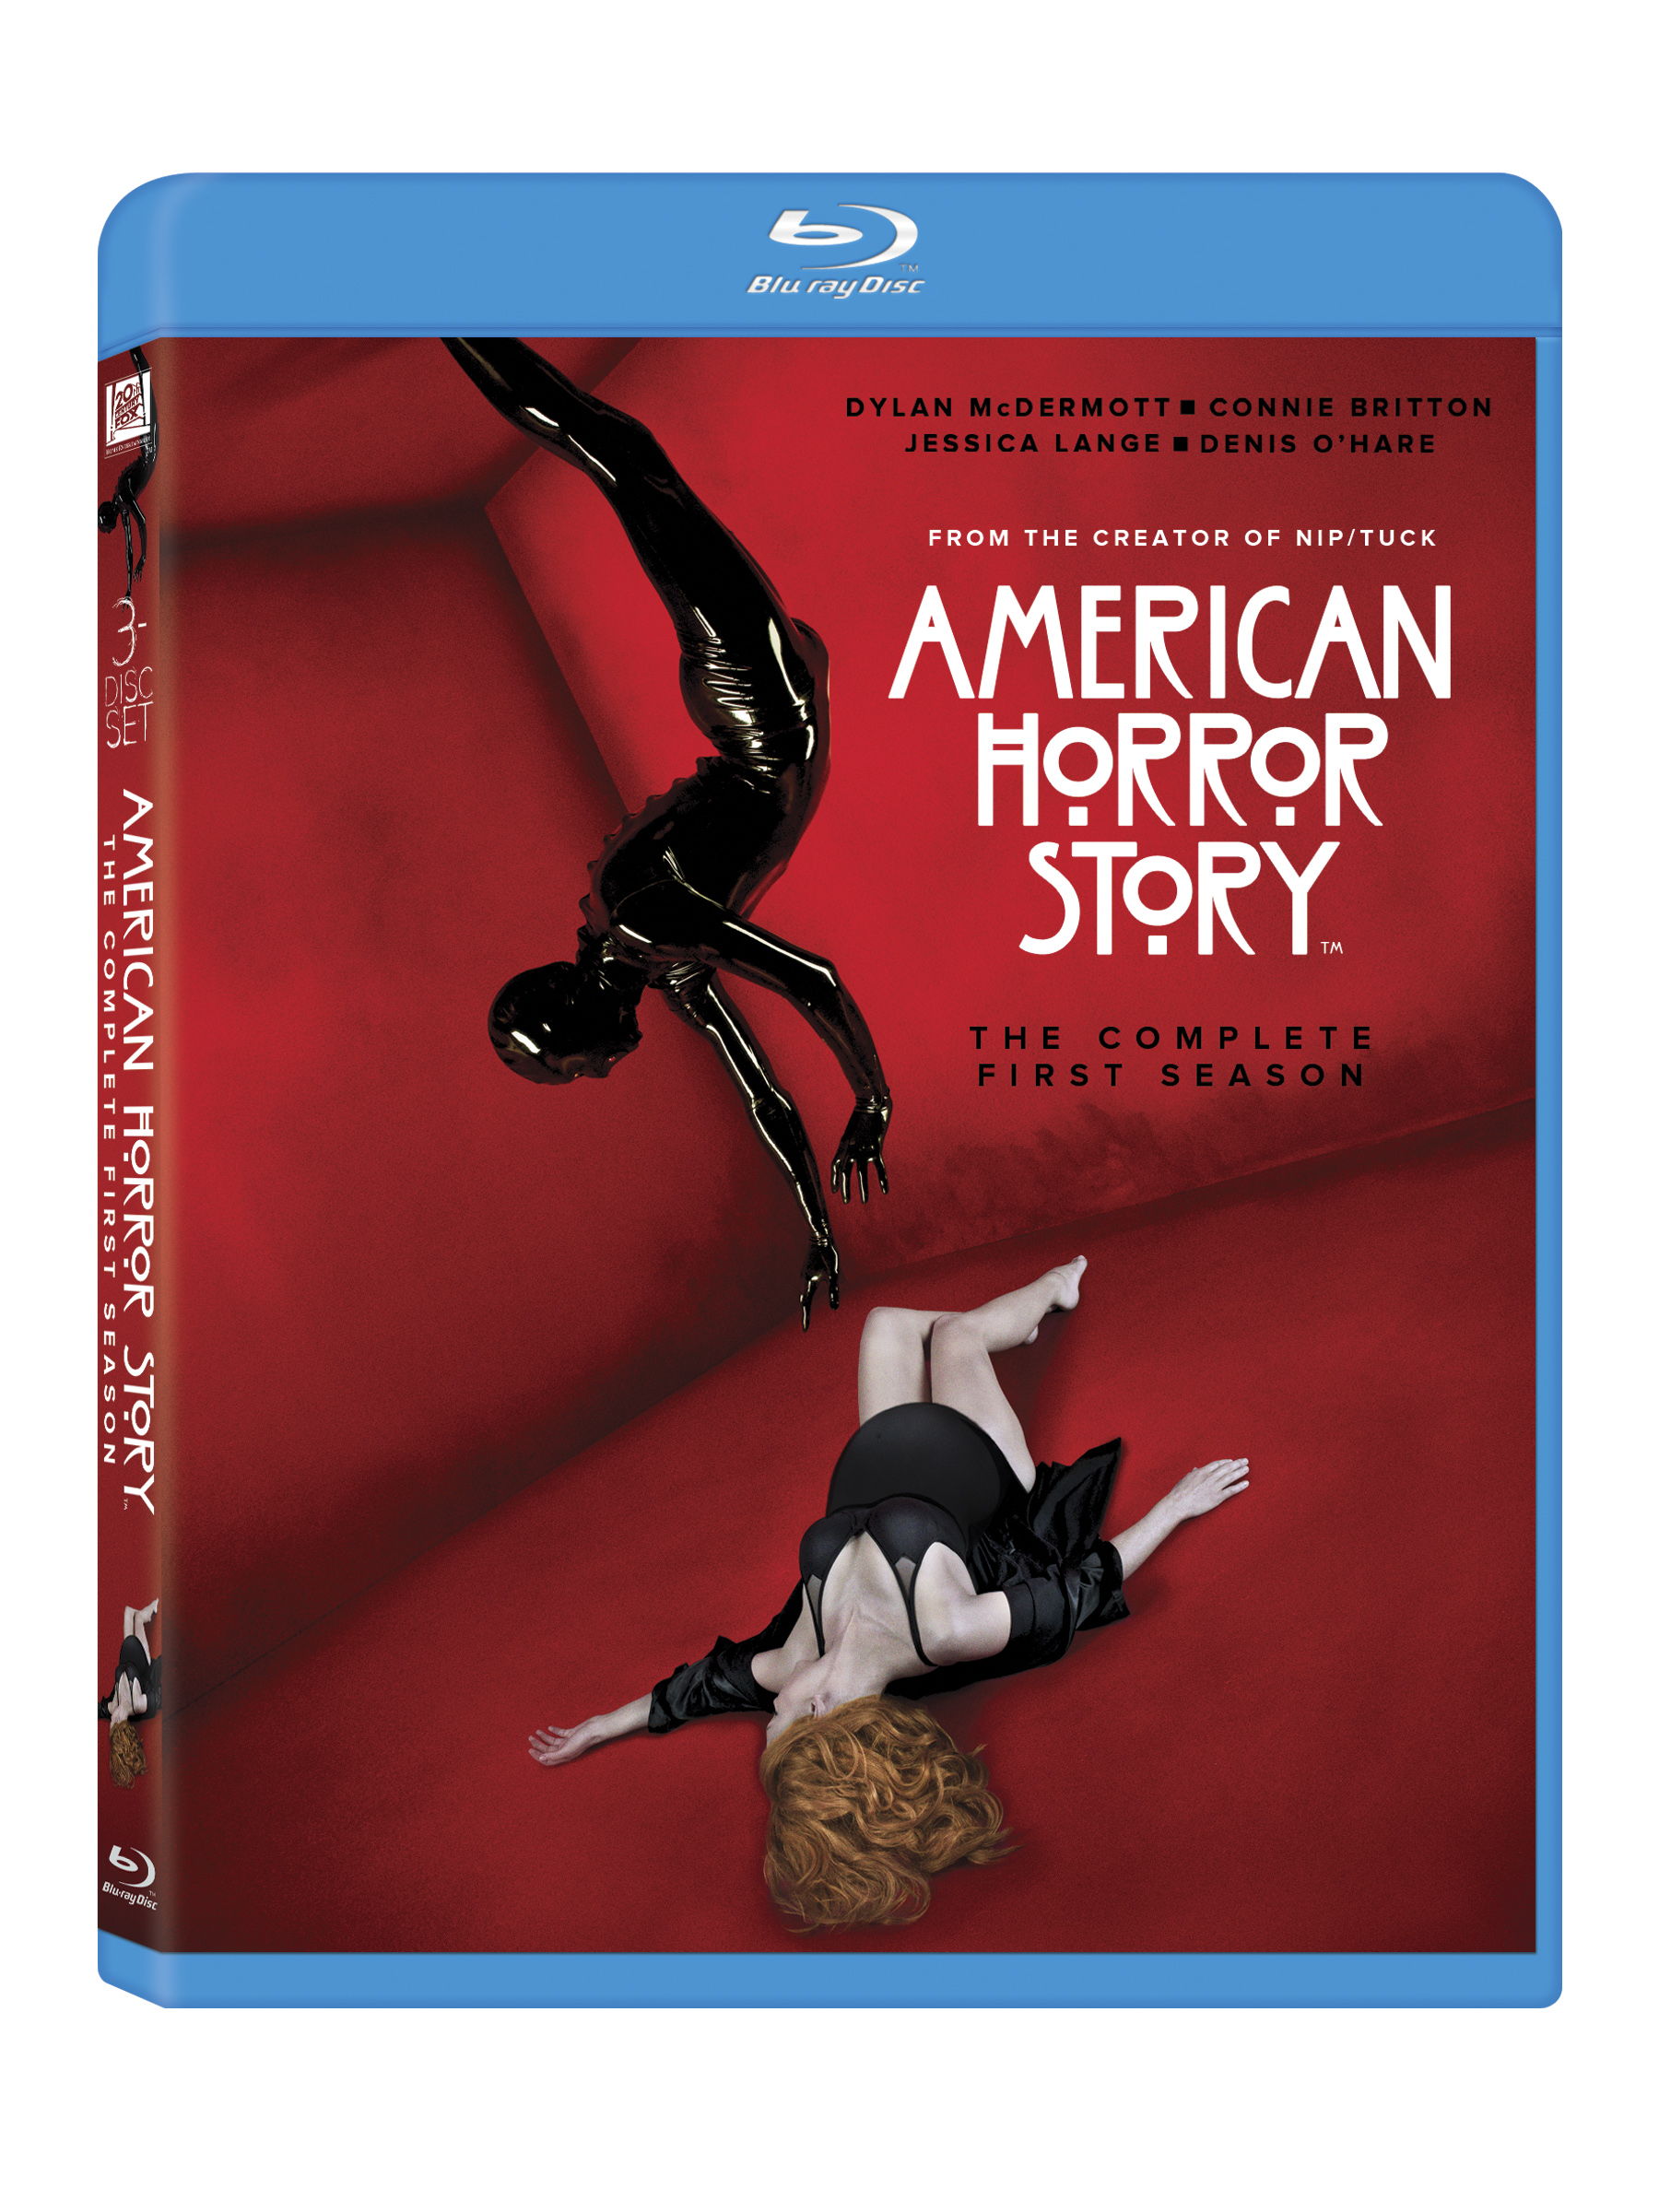 American Horror Story BluRay